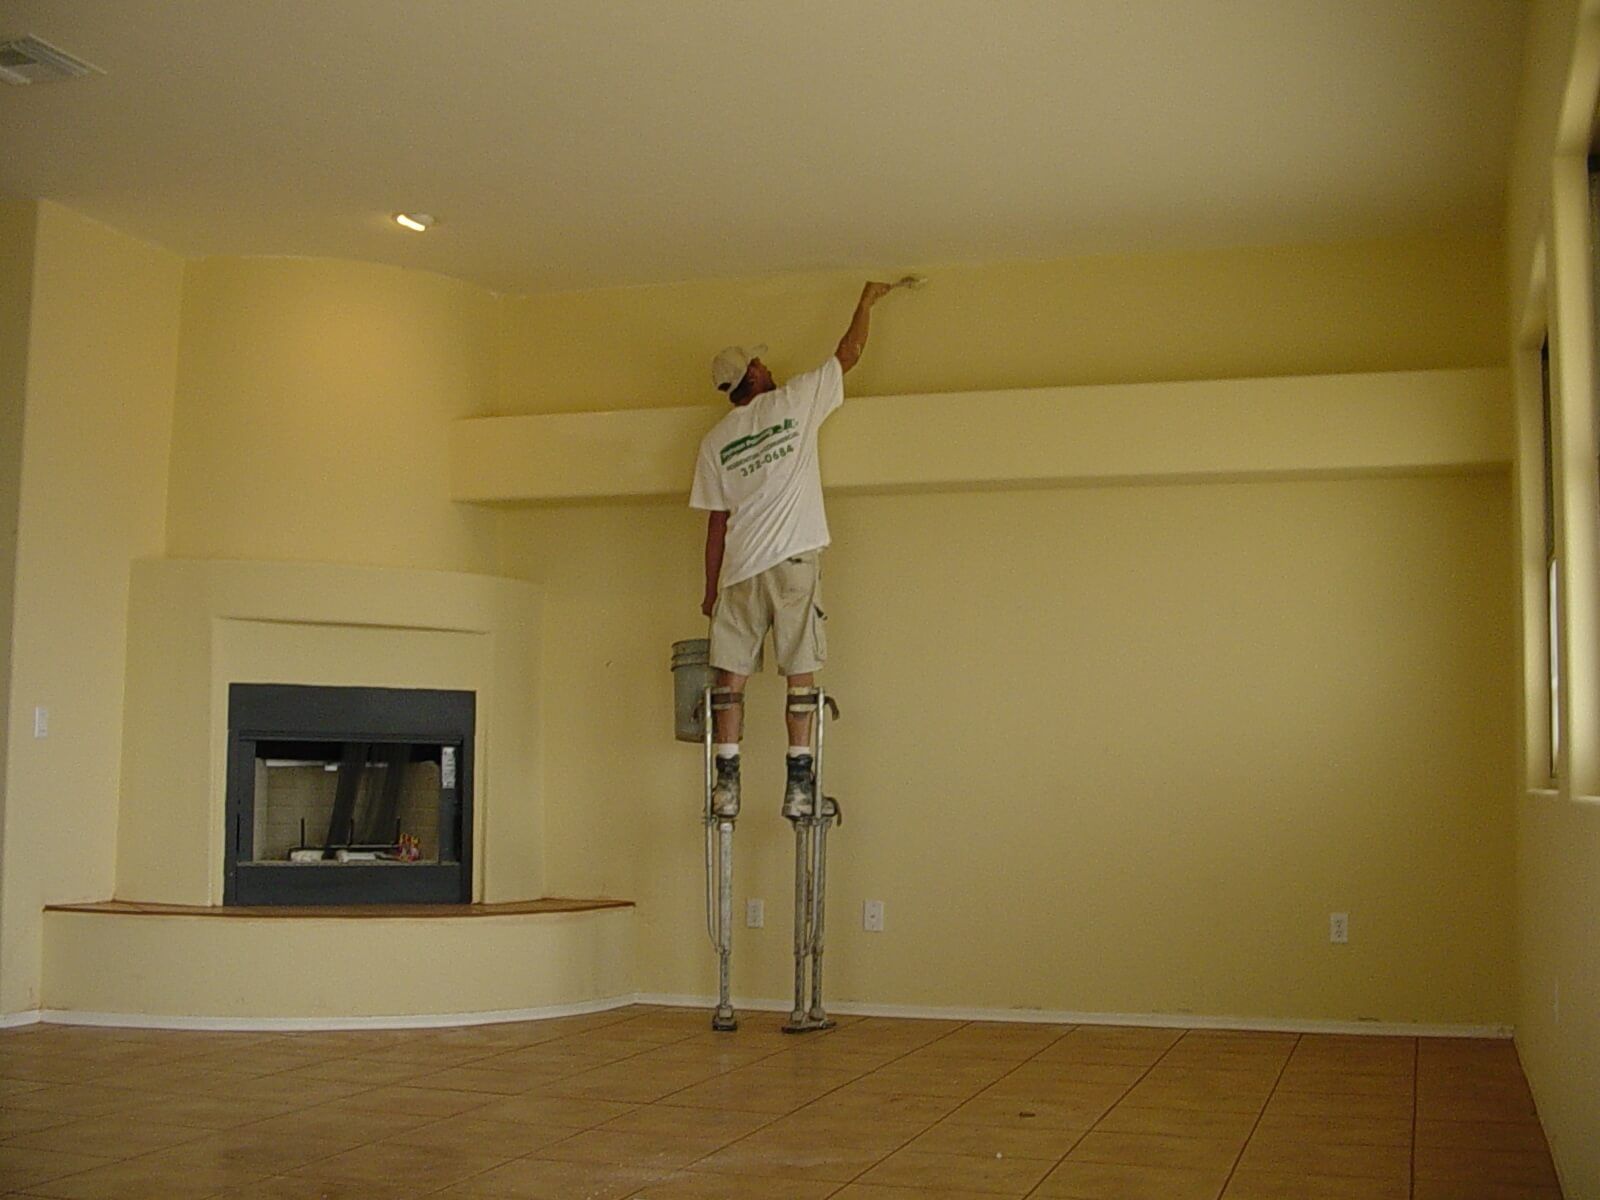 Residential Painting Services-Grand Prairie TX Professional Painting Contractors-We offer Residential & Commercial Painting, Interior Painting, Exterior Painting, Primer Painting, Industrial Painting, Professional Painters, Institutional Painters, and more.